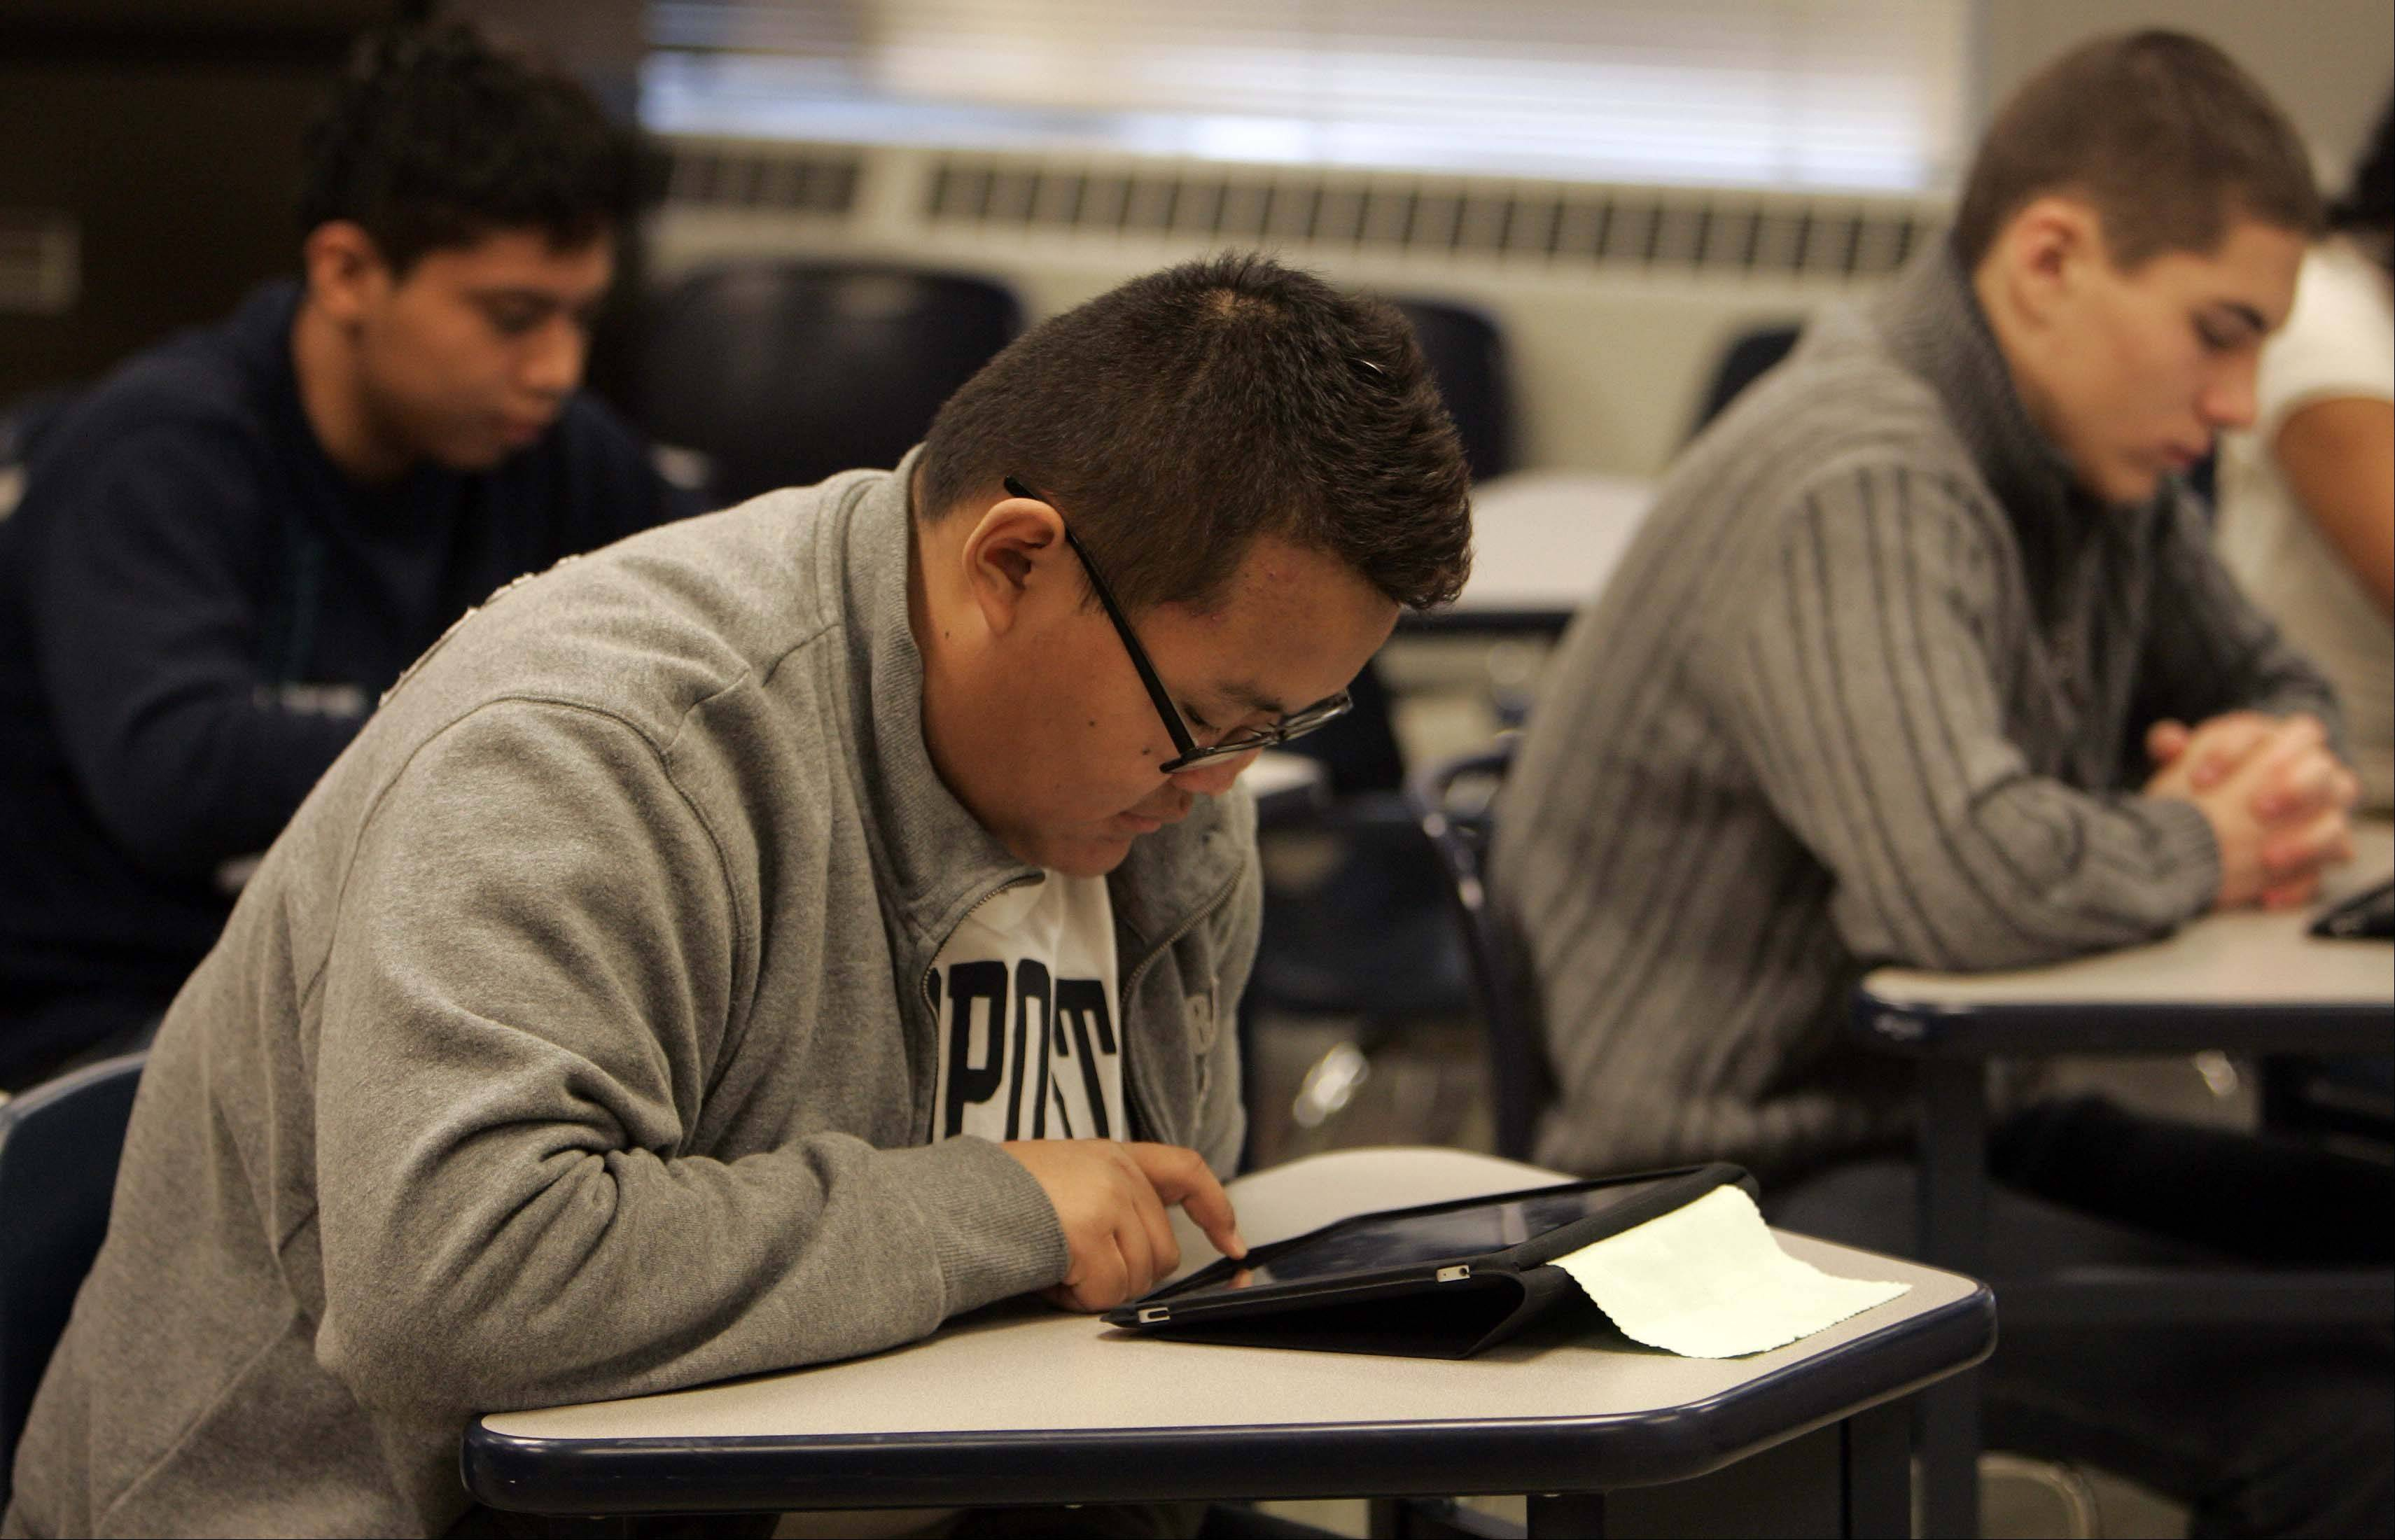 Bayar Enkhtuvshin, 16, studies on his iPad during class at the Northwest Suburban High School District 214 Newcomer Center in Arlington Heights. District 214 is running 20 tablet computer pilot programs in its schools this year to test their uses in the classroom. They hope that with